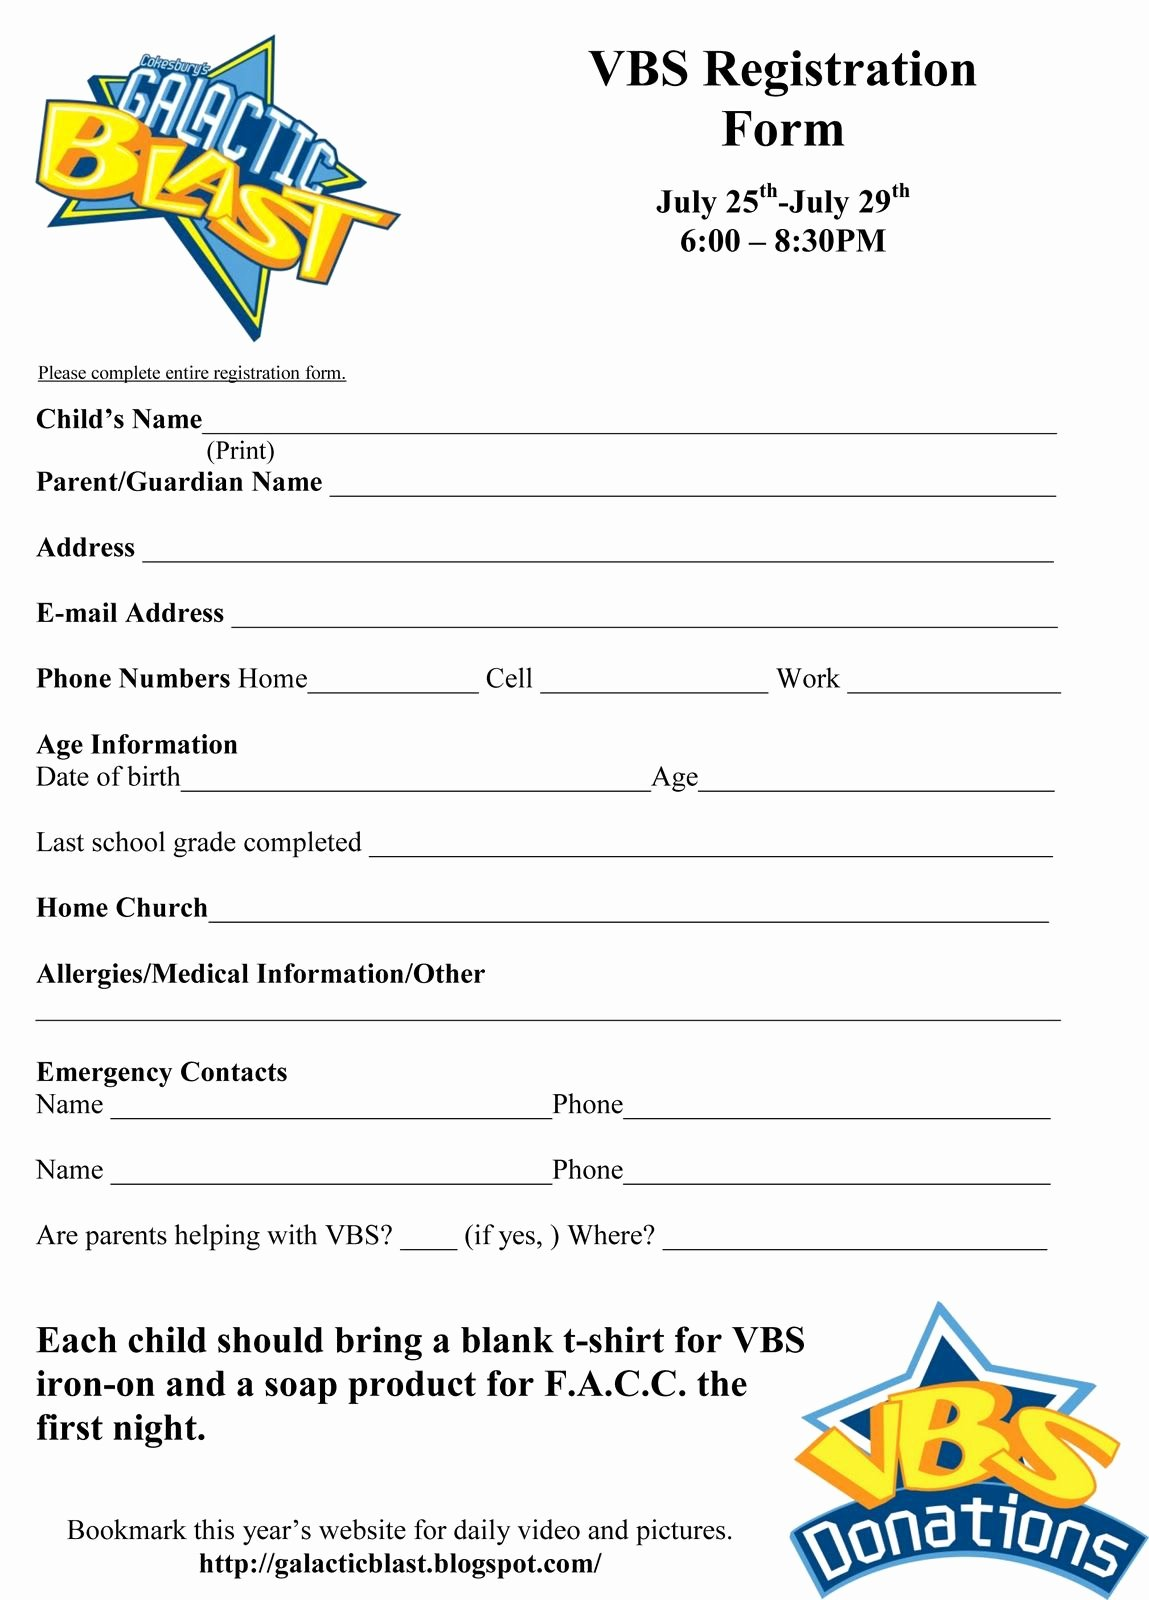 Printable Registration form Template Awesome Free Vbs Registration form Template Vbs